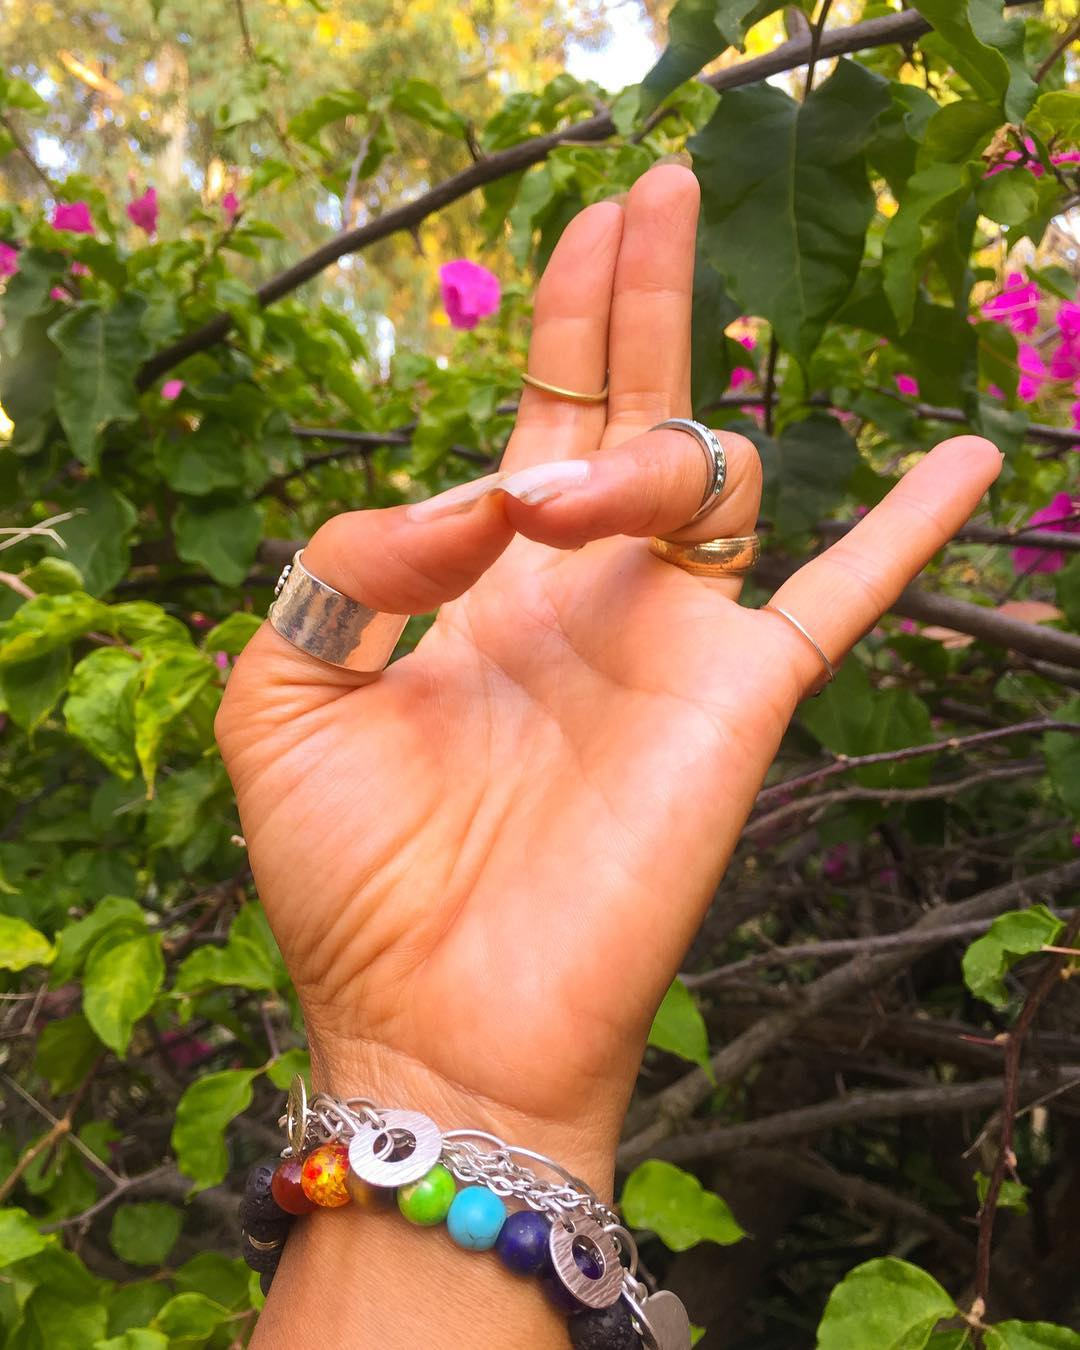 Benefits of Prithvi Mudra